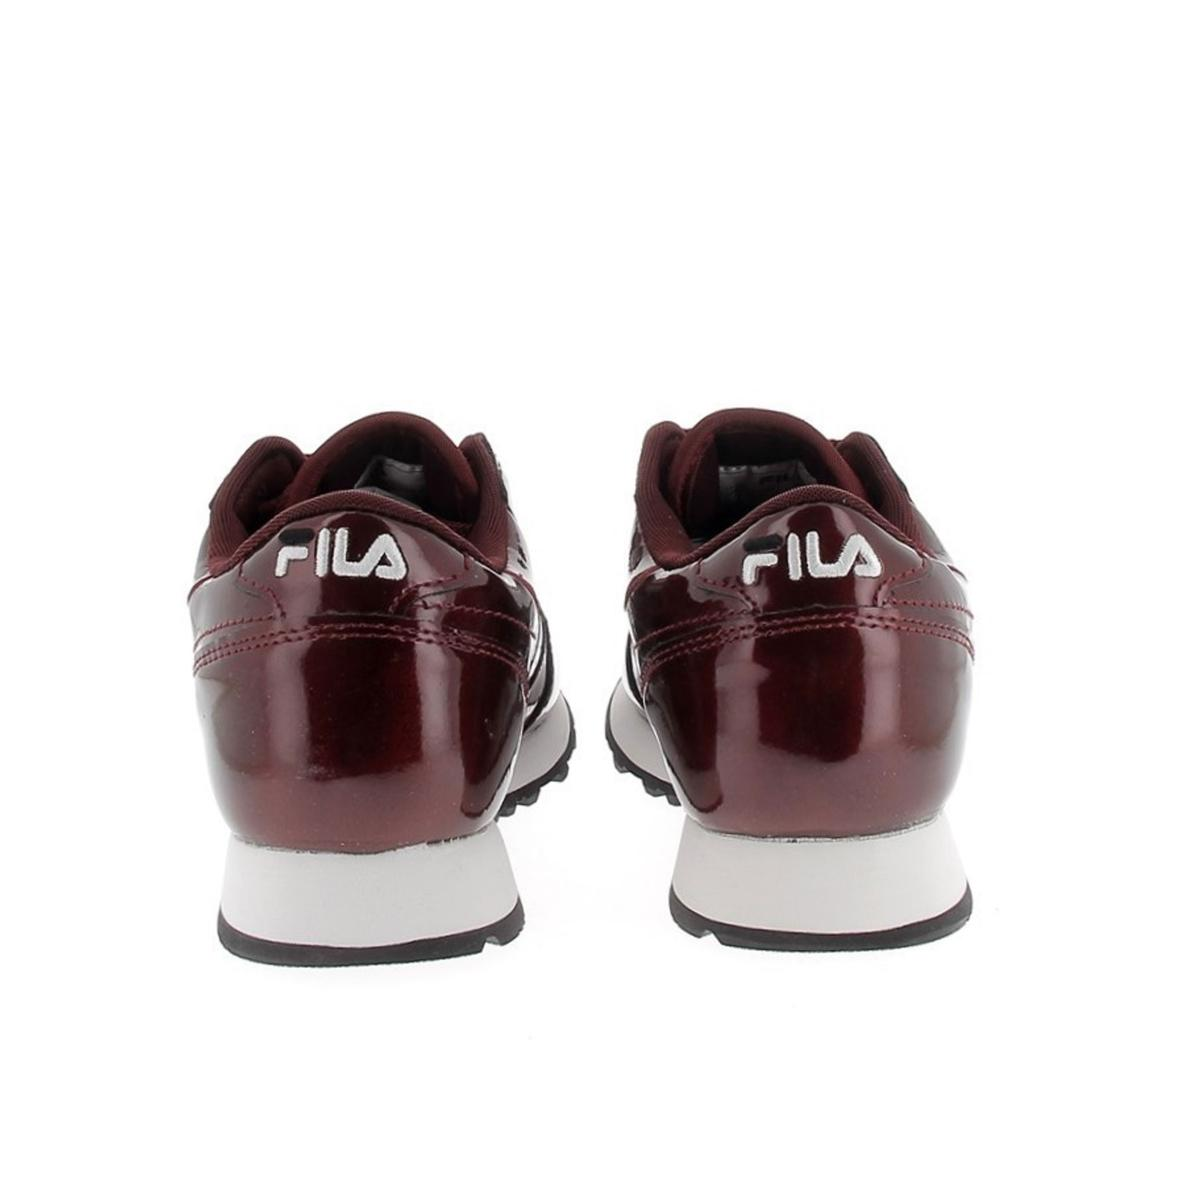 Scarpe Sneakers FILA ORBIT F LOW WMN da donna rif. 1010454.40K